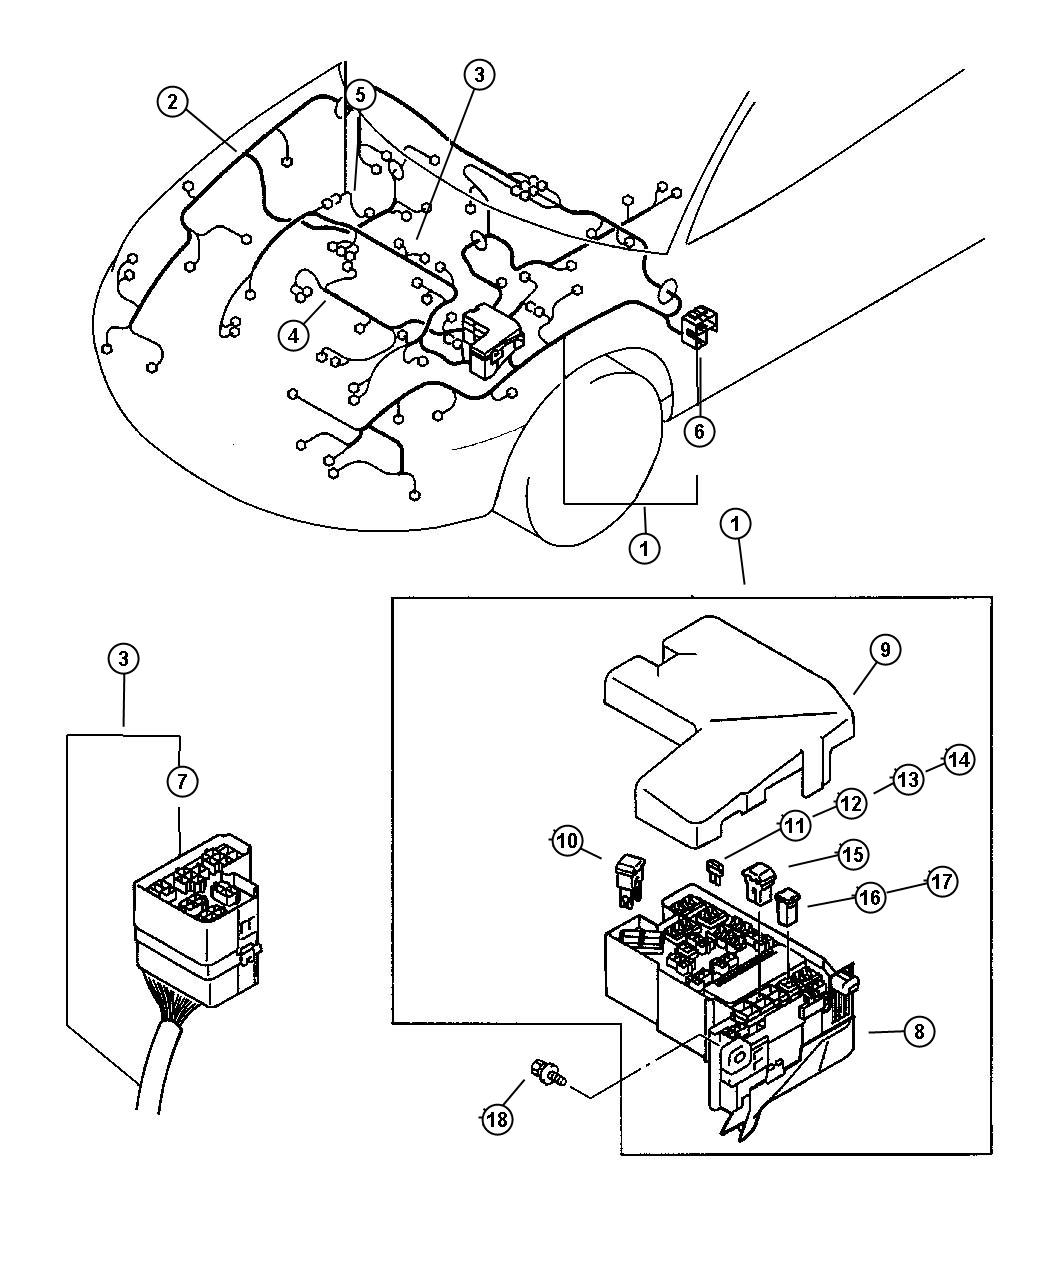 wiring diagram for 2000 chrysler sebring